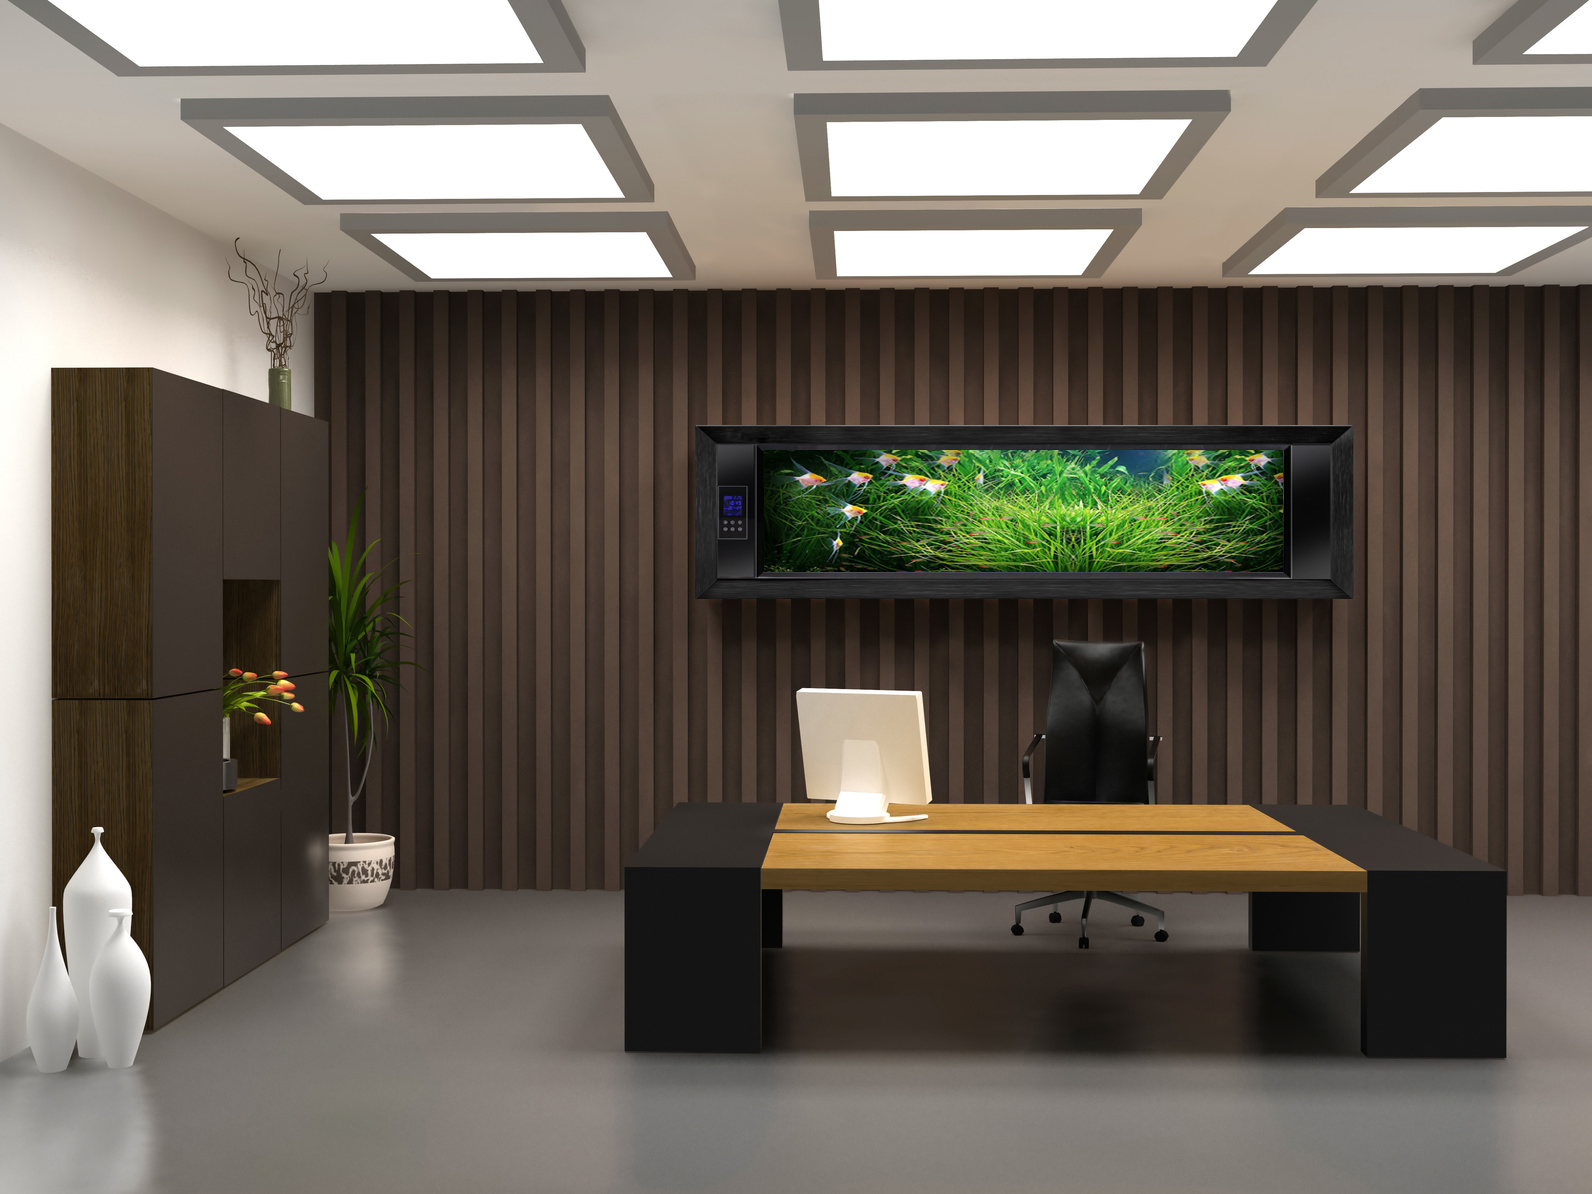 Elegant ceo office design bellisima for Modern home office design